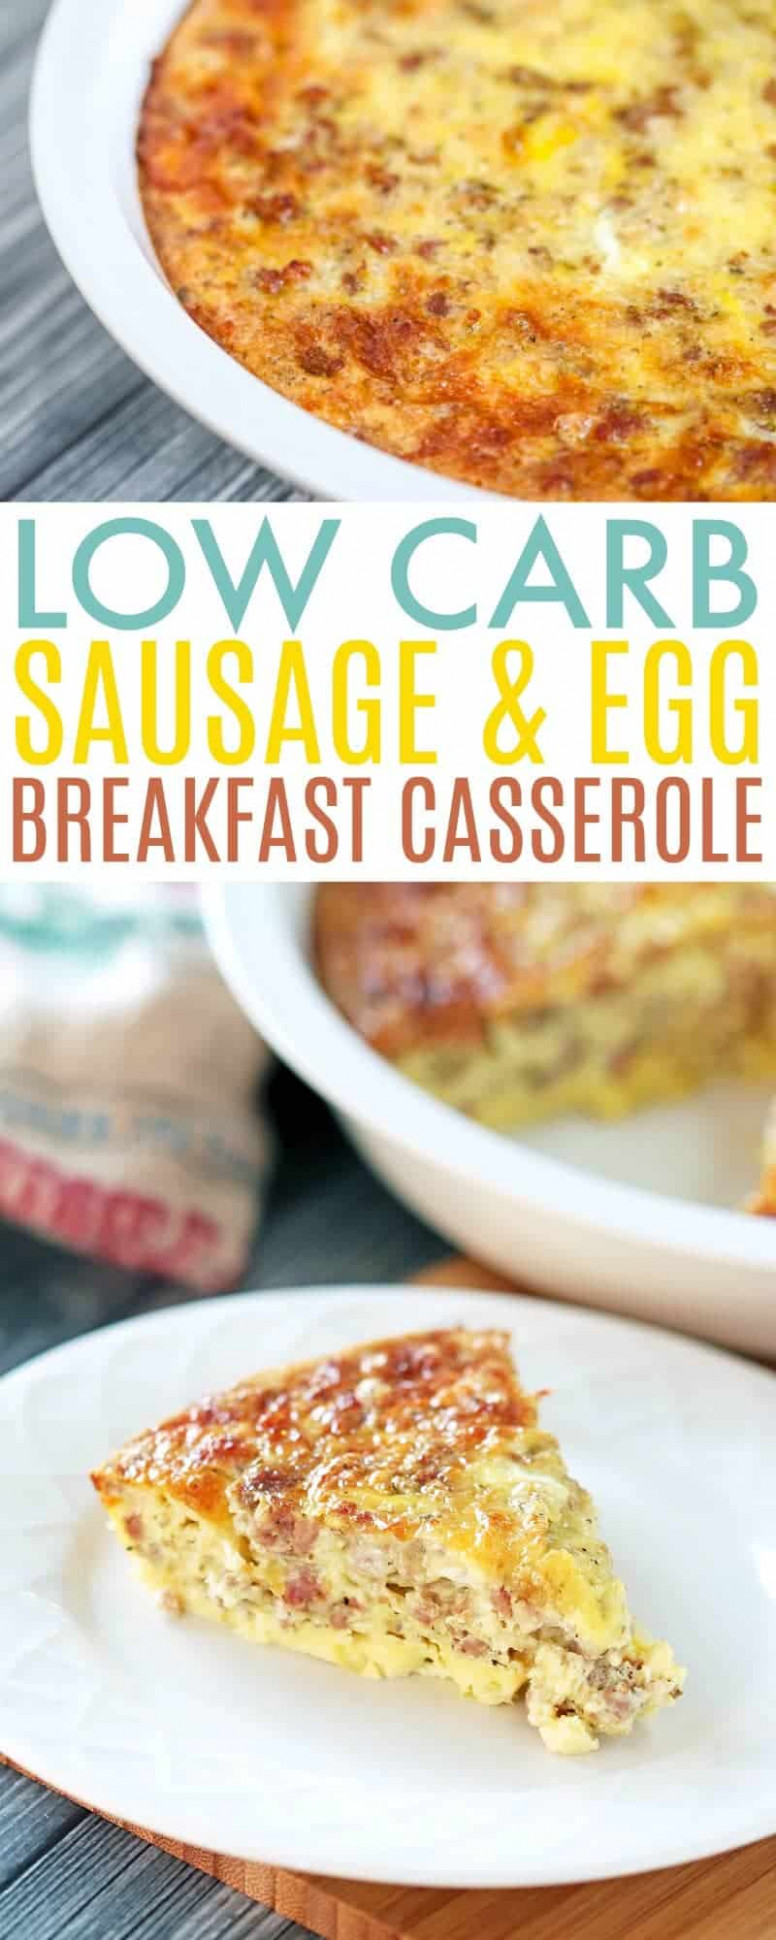 Low Carb Breakfast Casserole - Low Carb Sausage and Egg ...